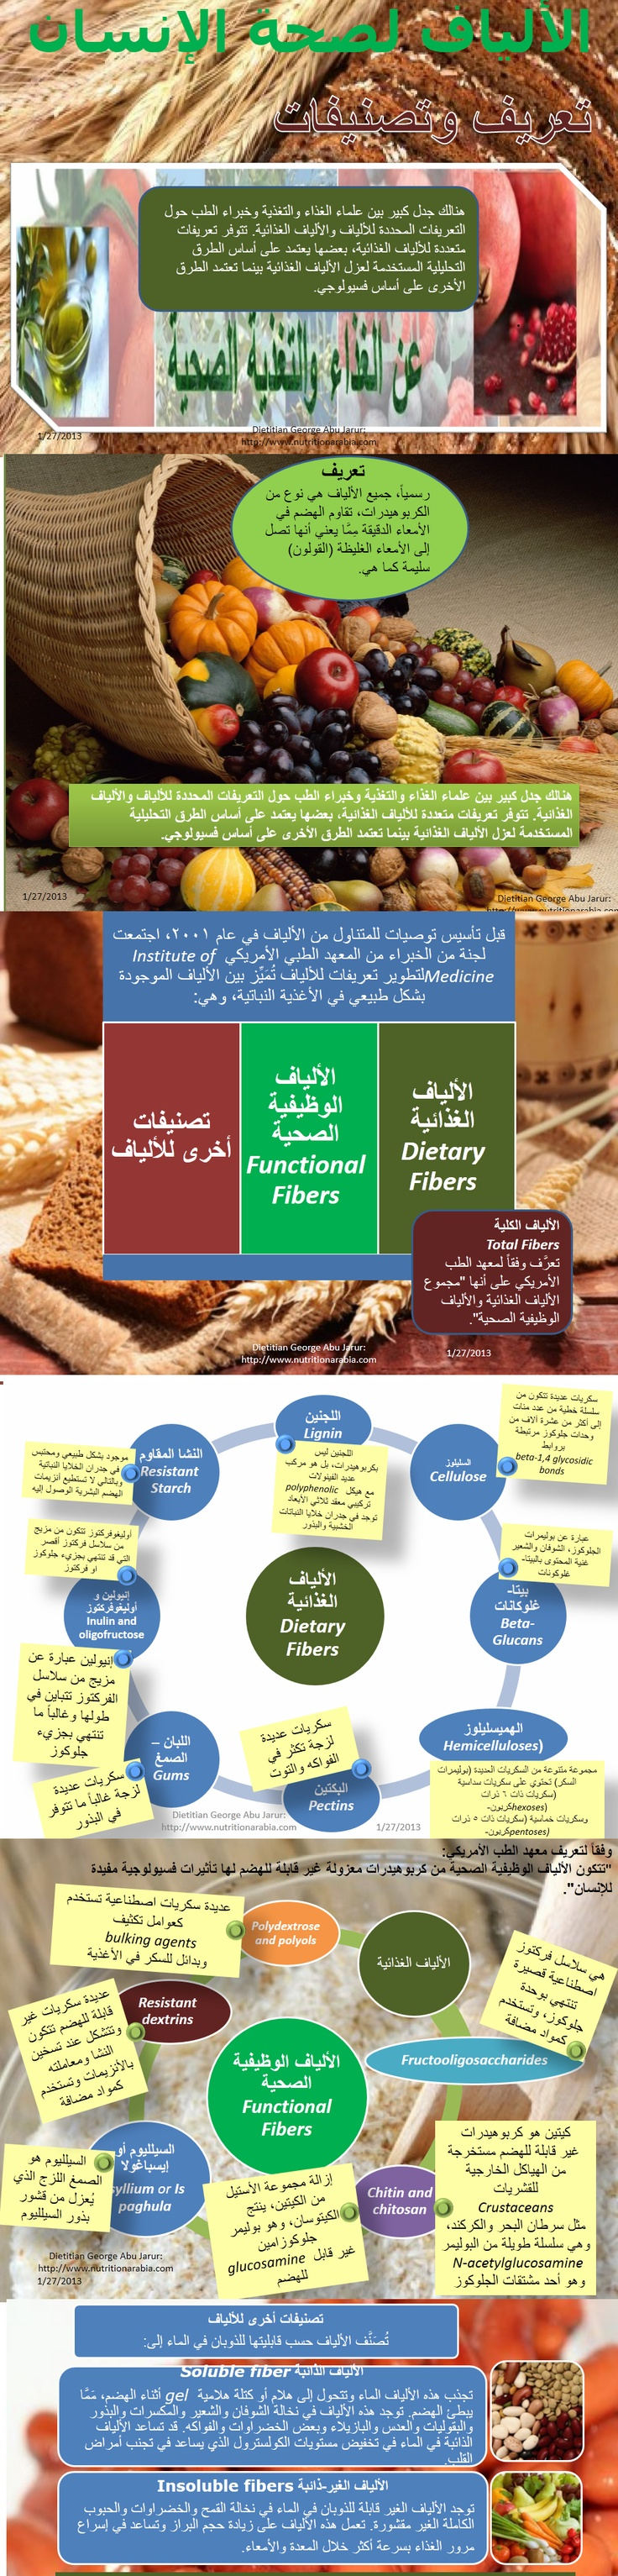 Arabic infographic on fiber definition and classifications